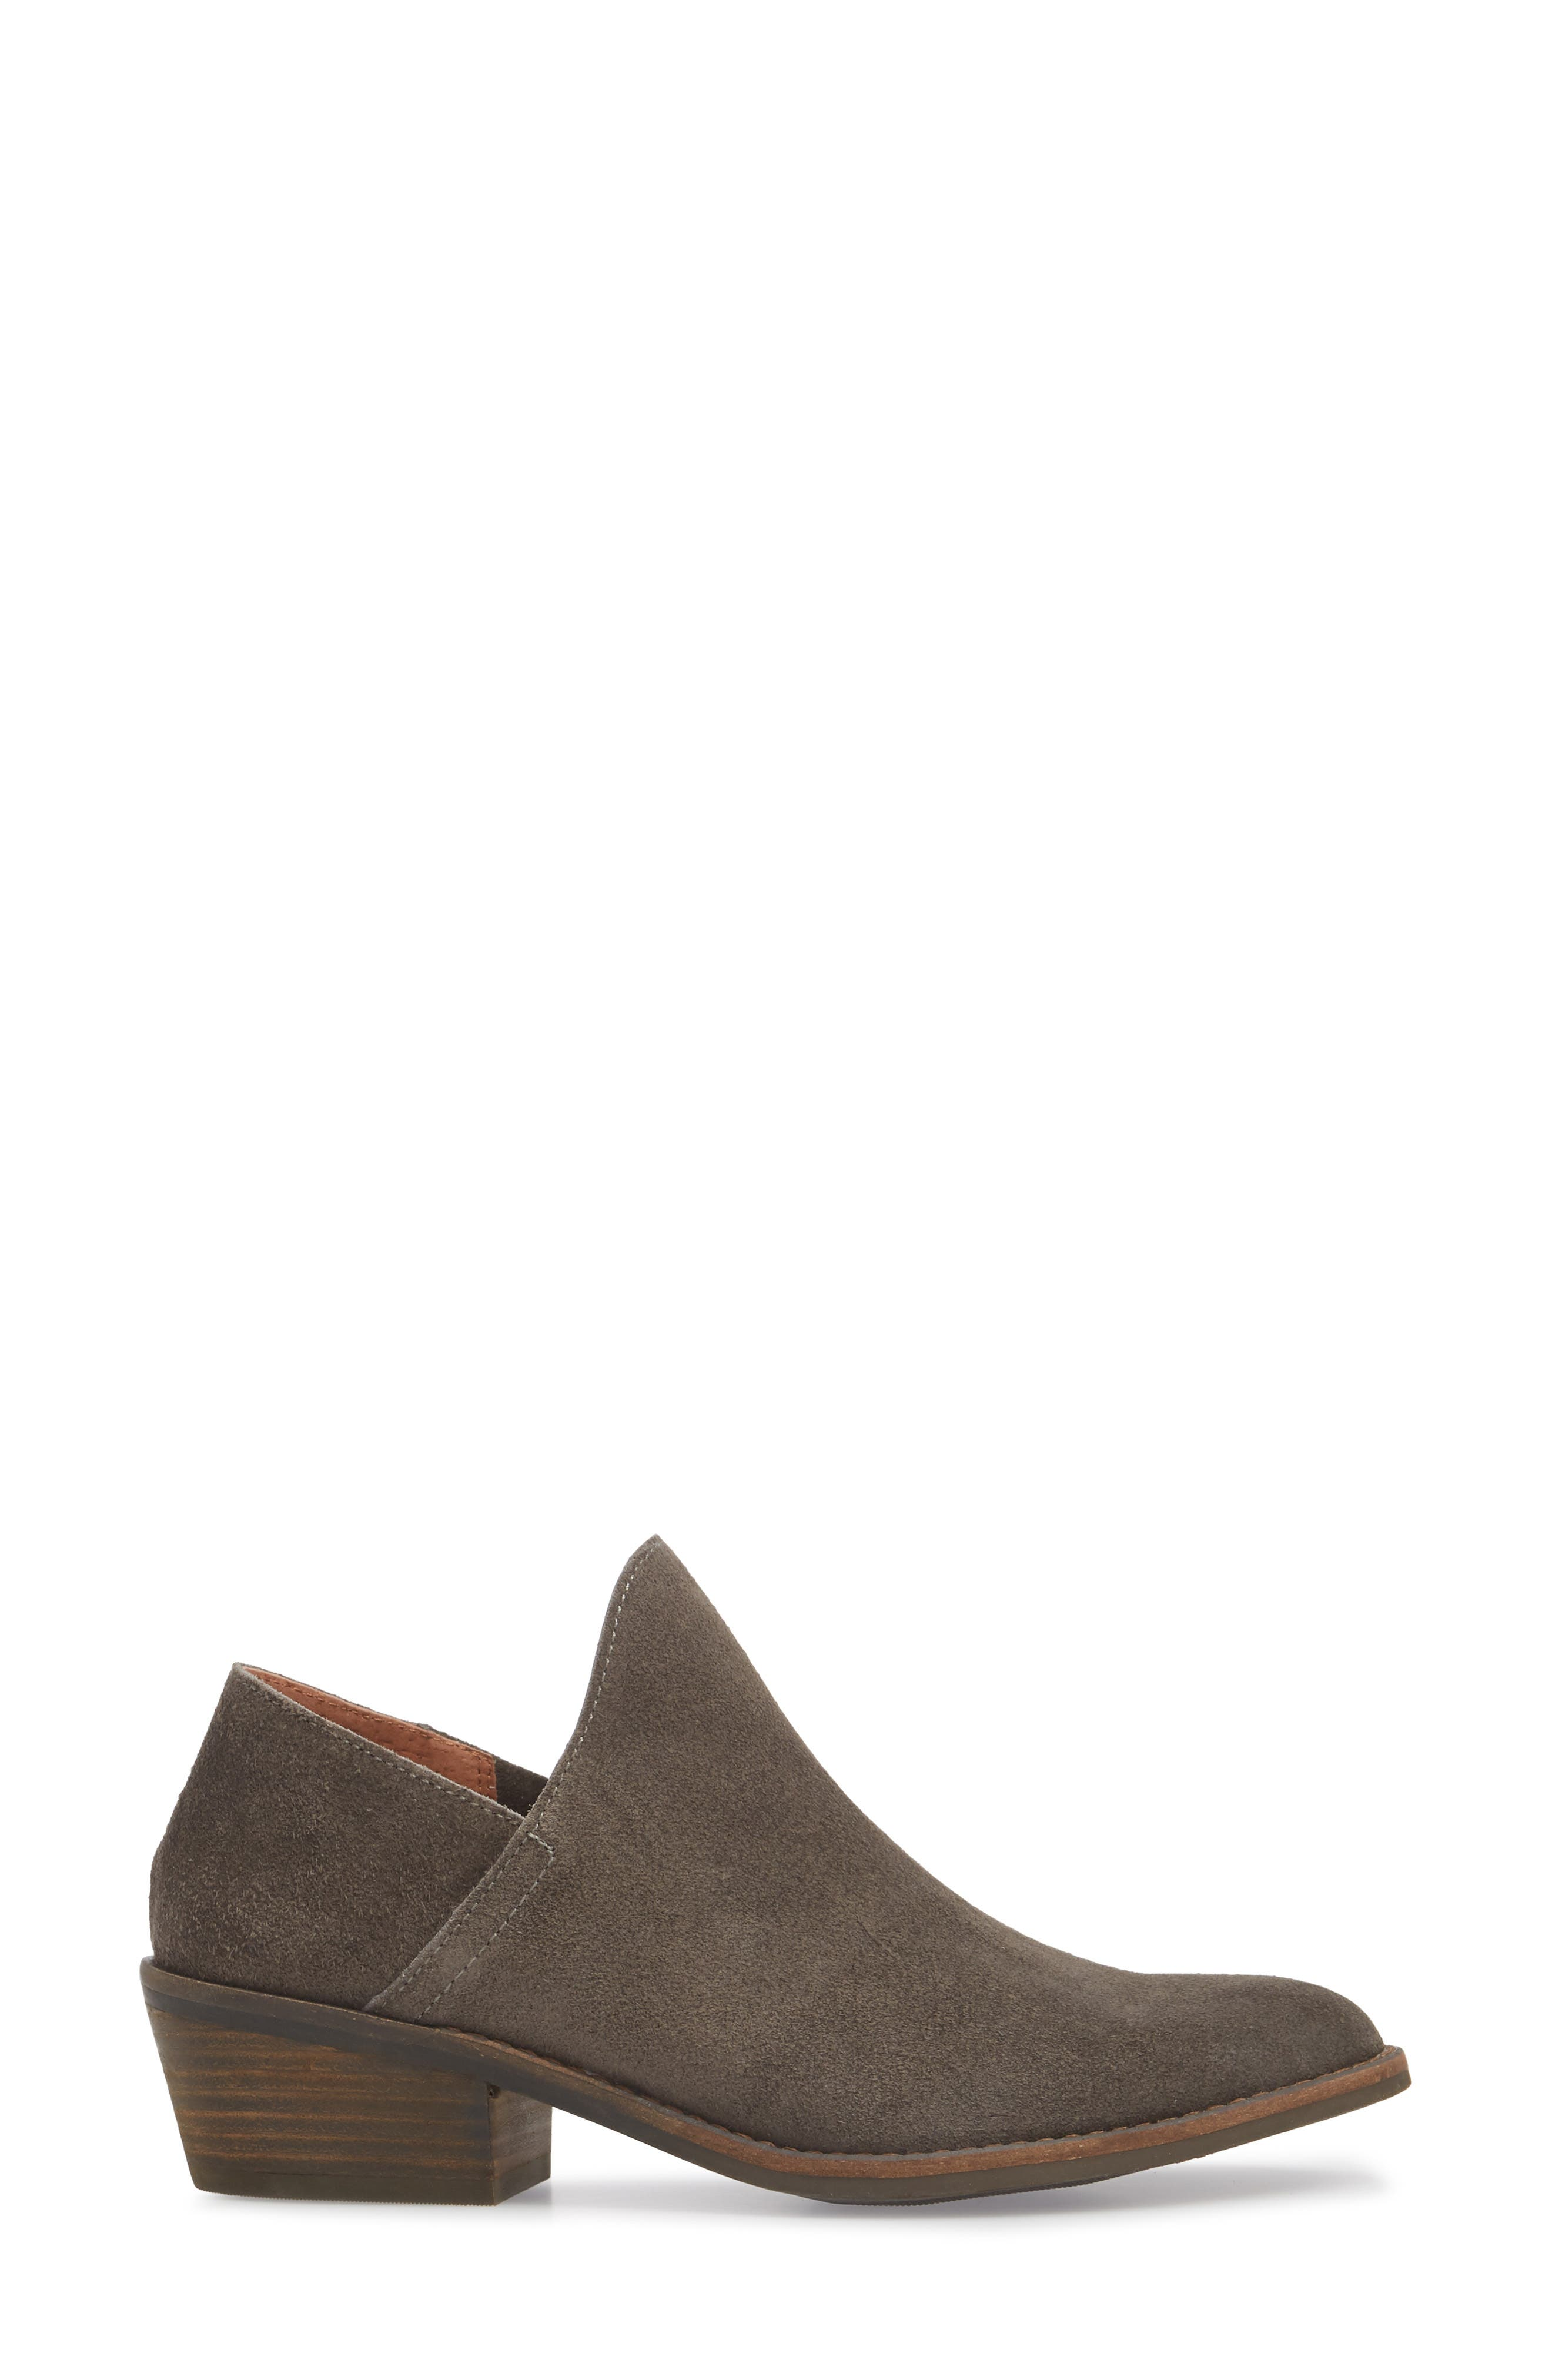 Fausst Bootie,                             Alternate thumbnail 3, color,                             PERISCOPE LEATHER